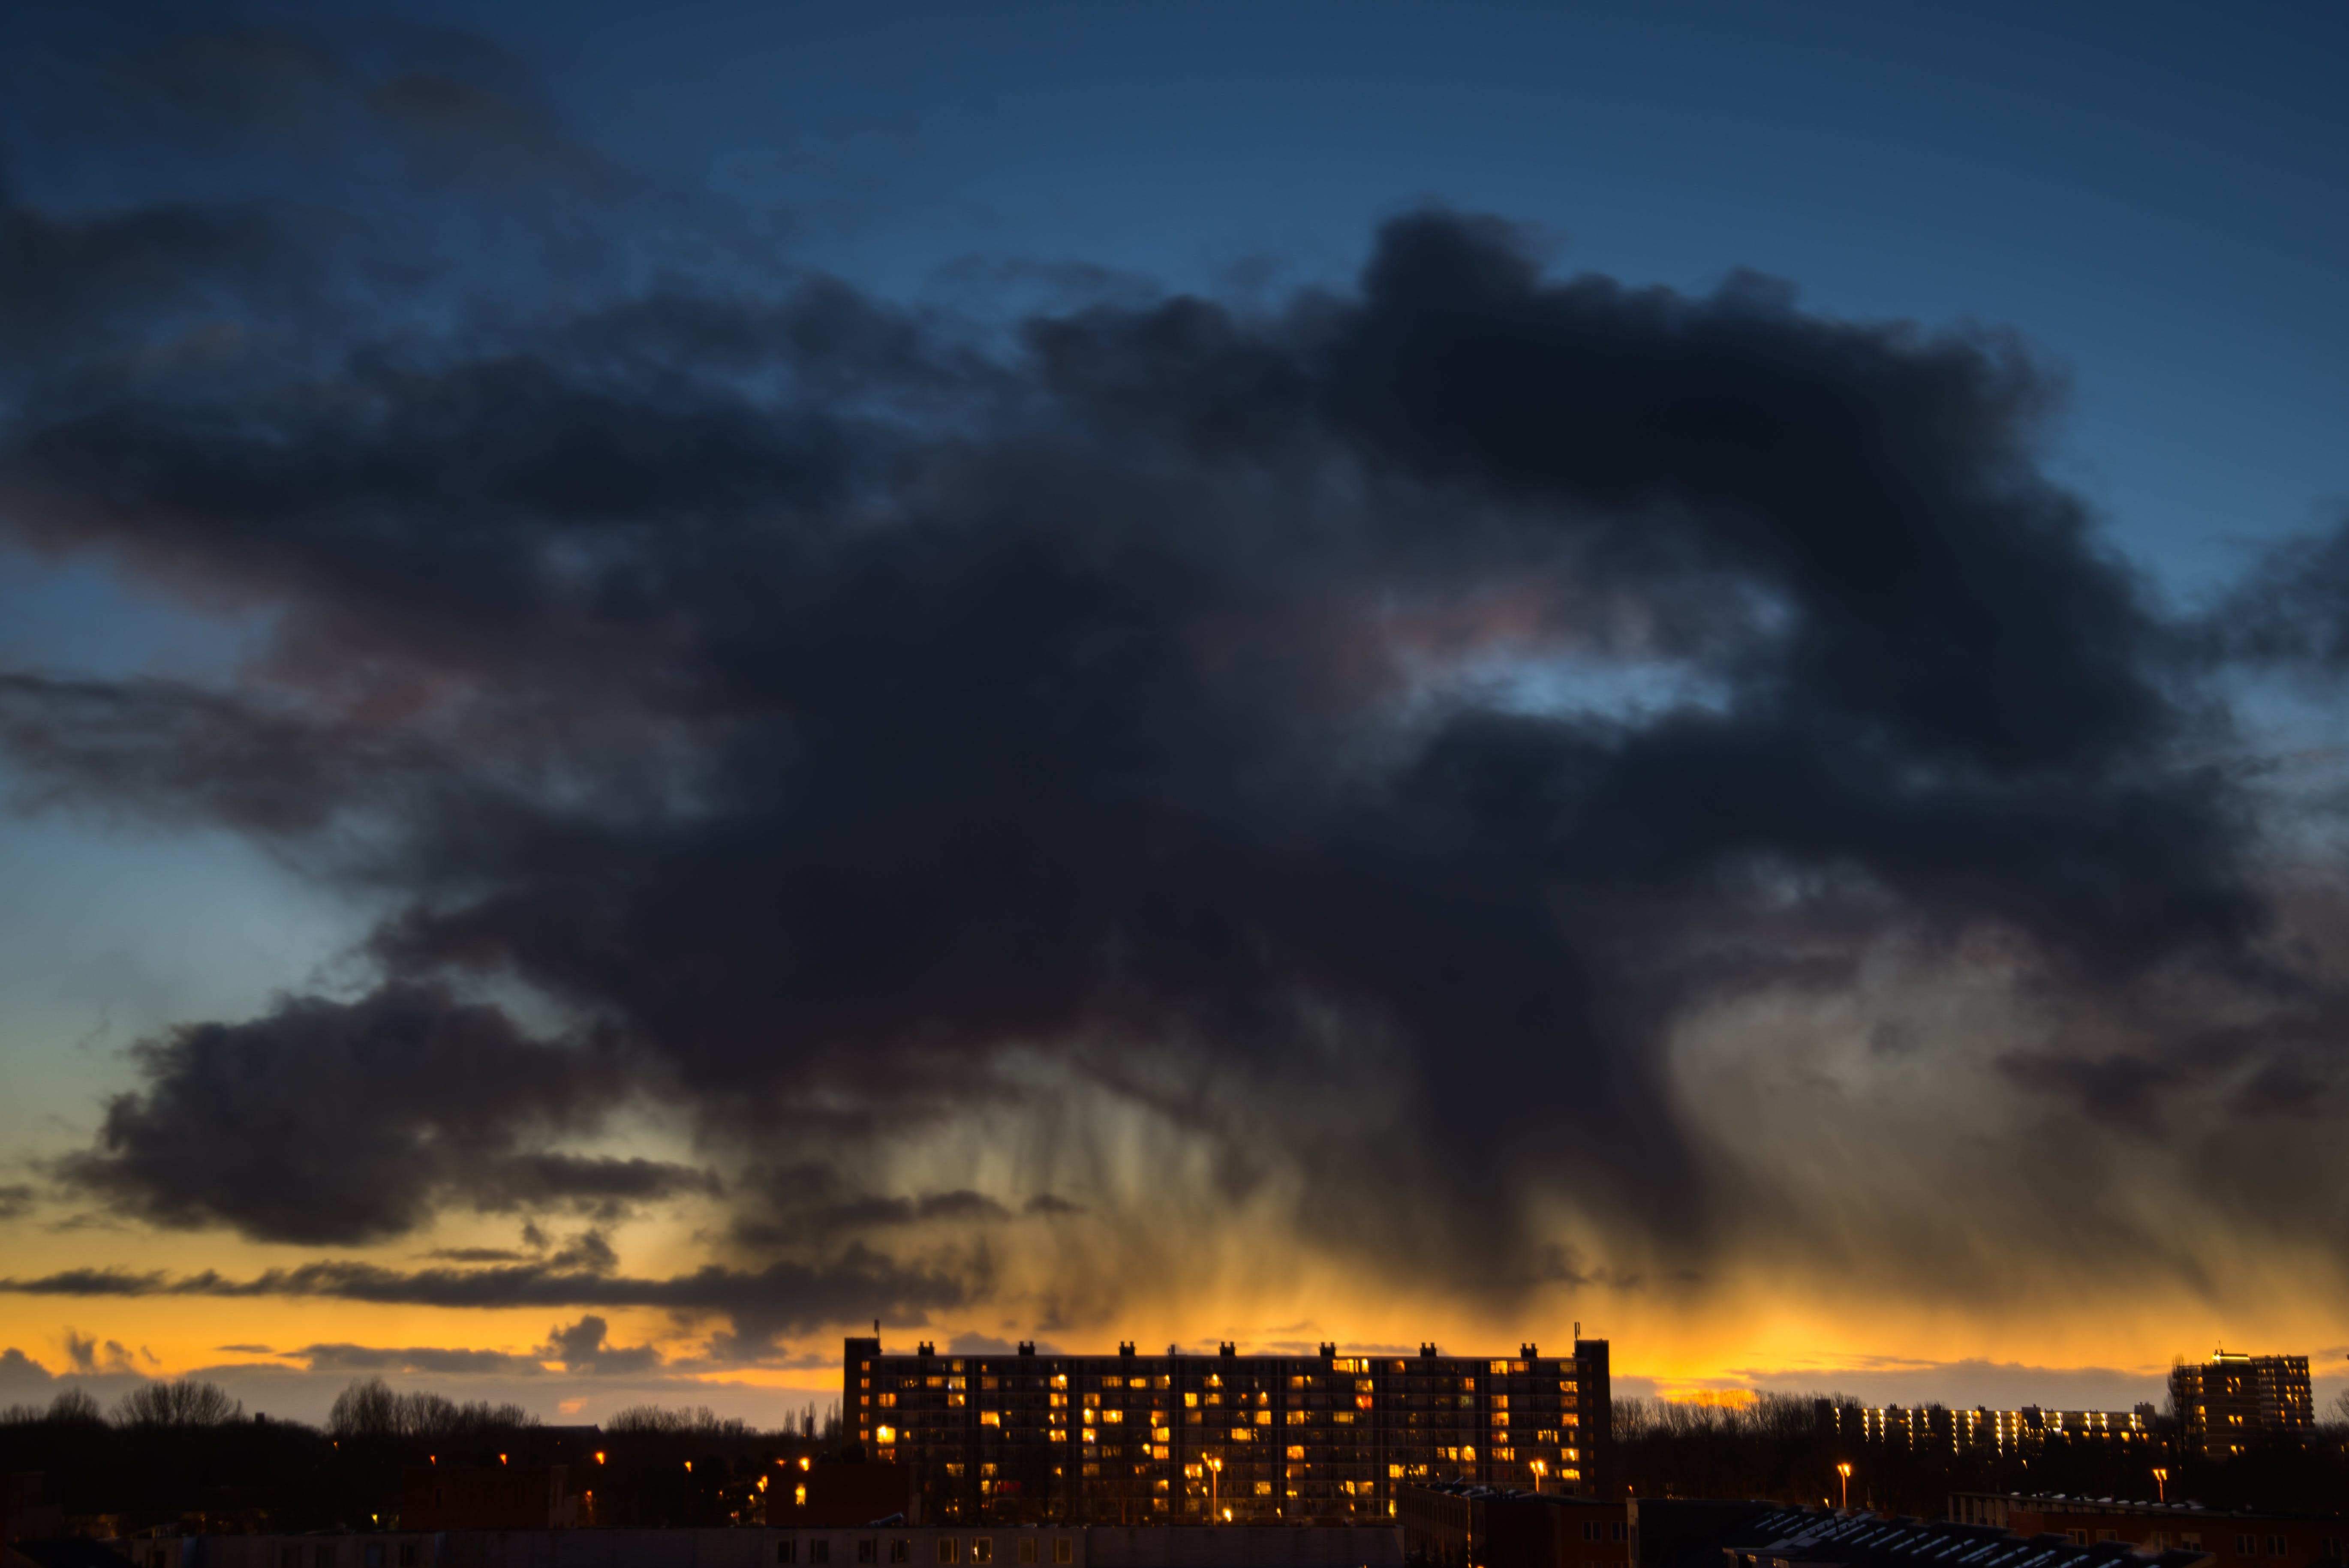 Lighted High Rise Building Under Blue Clouding Sky during Sunset